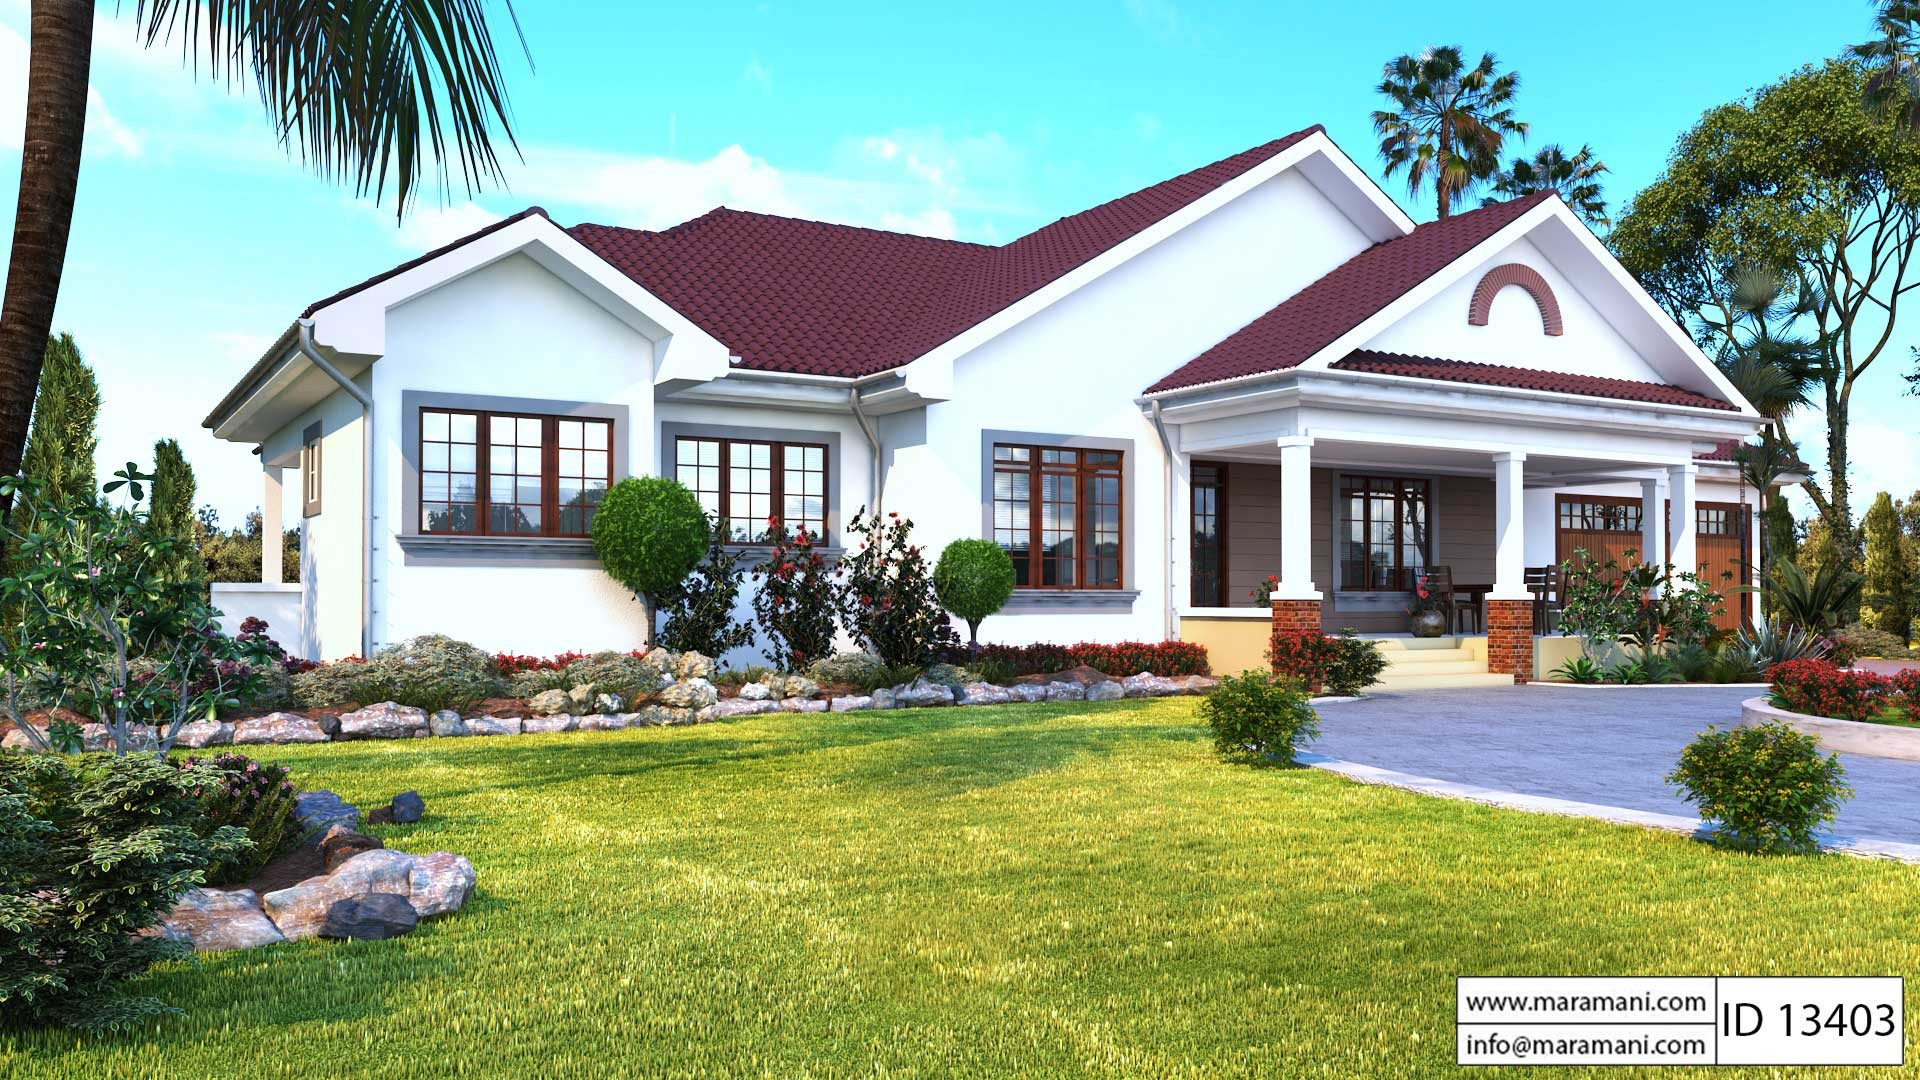 3 bedroom bungalow with garage id house plans by maramani